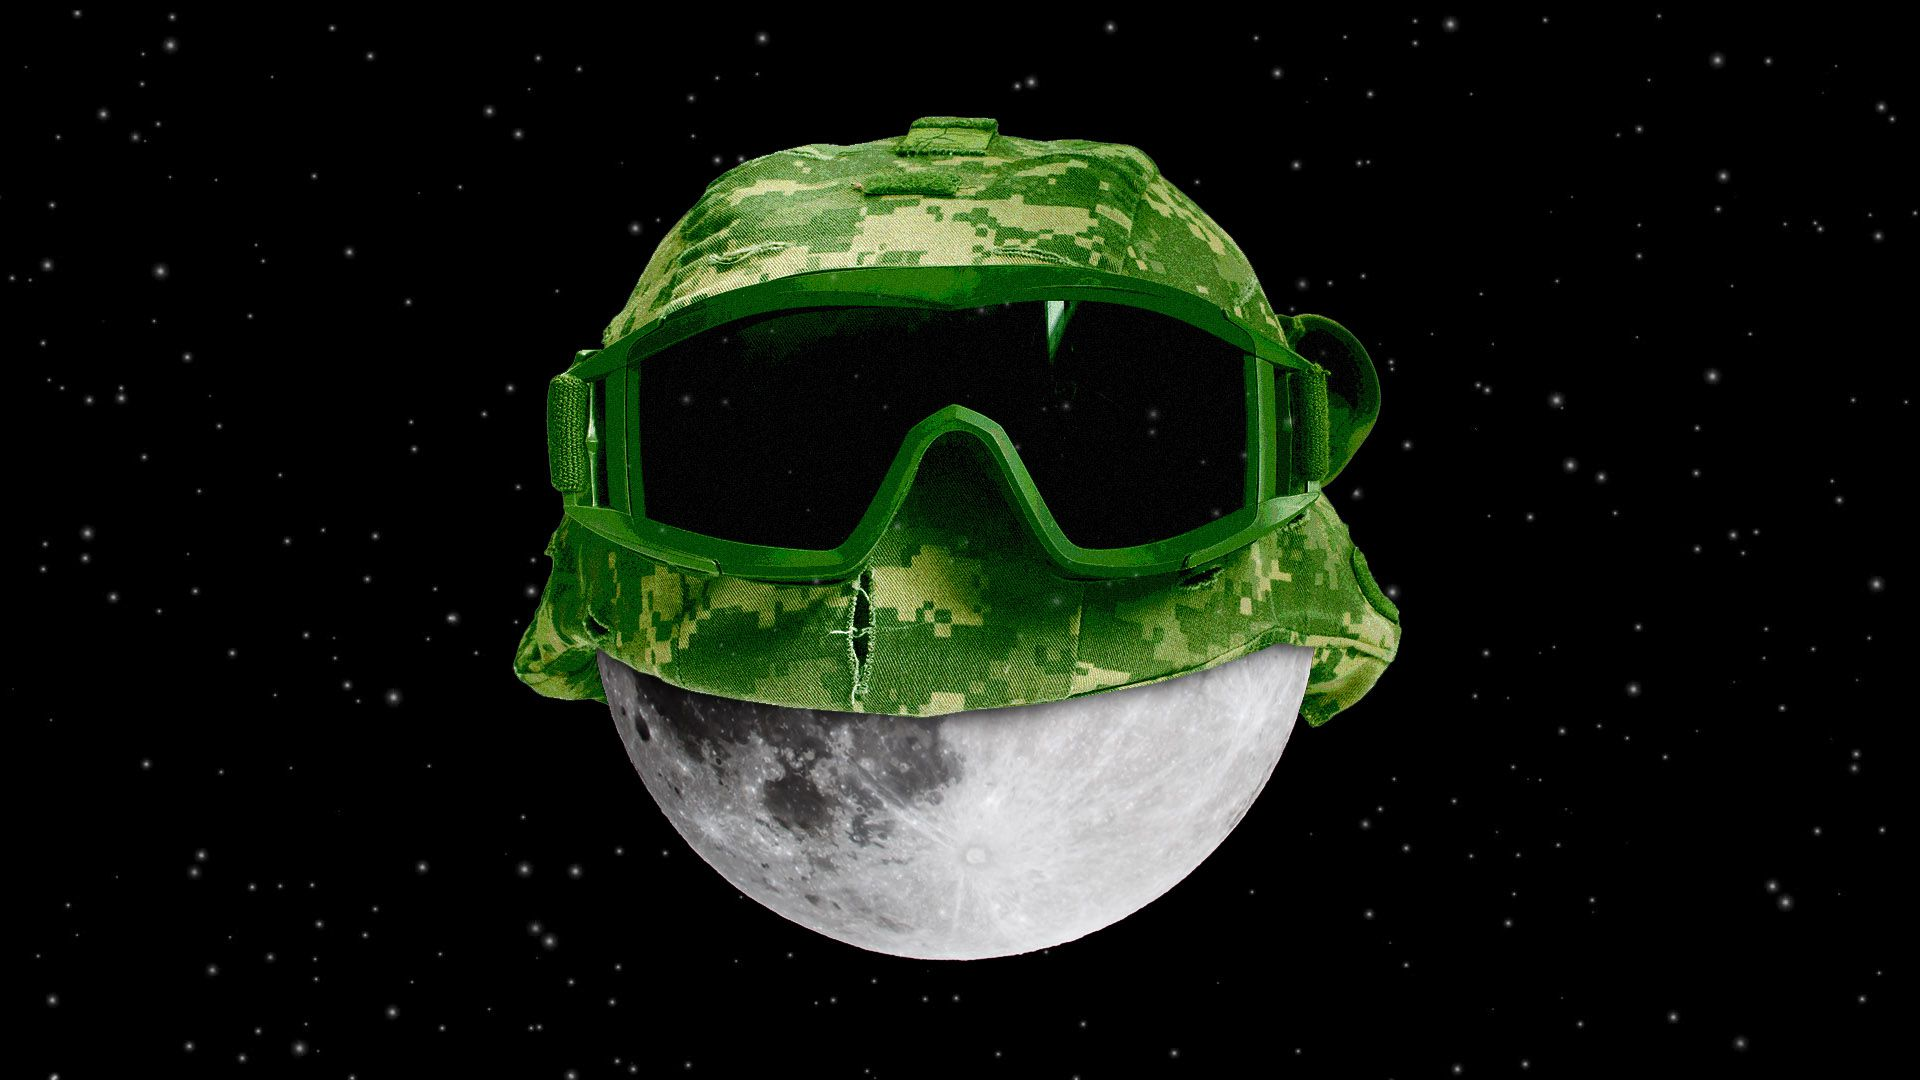 Moon with military goggles and a helmet.